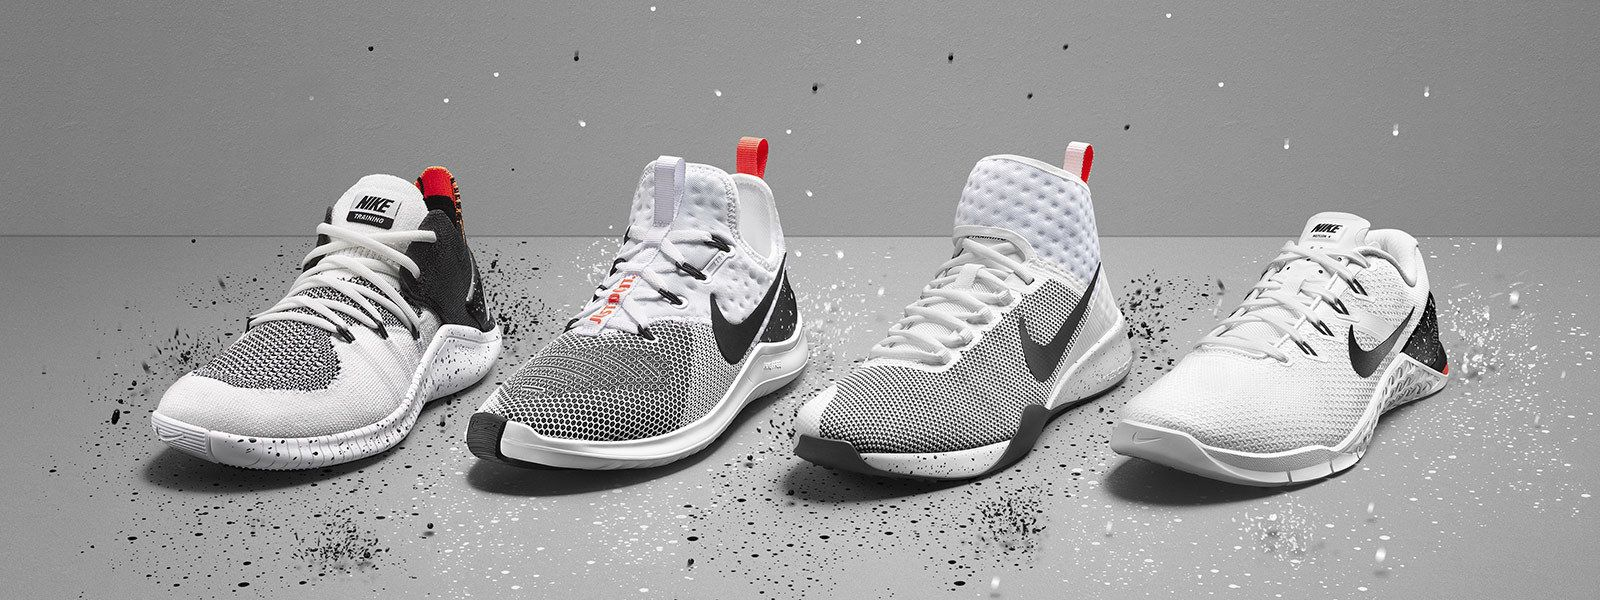 New Nike Revolution 4 Shoes